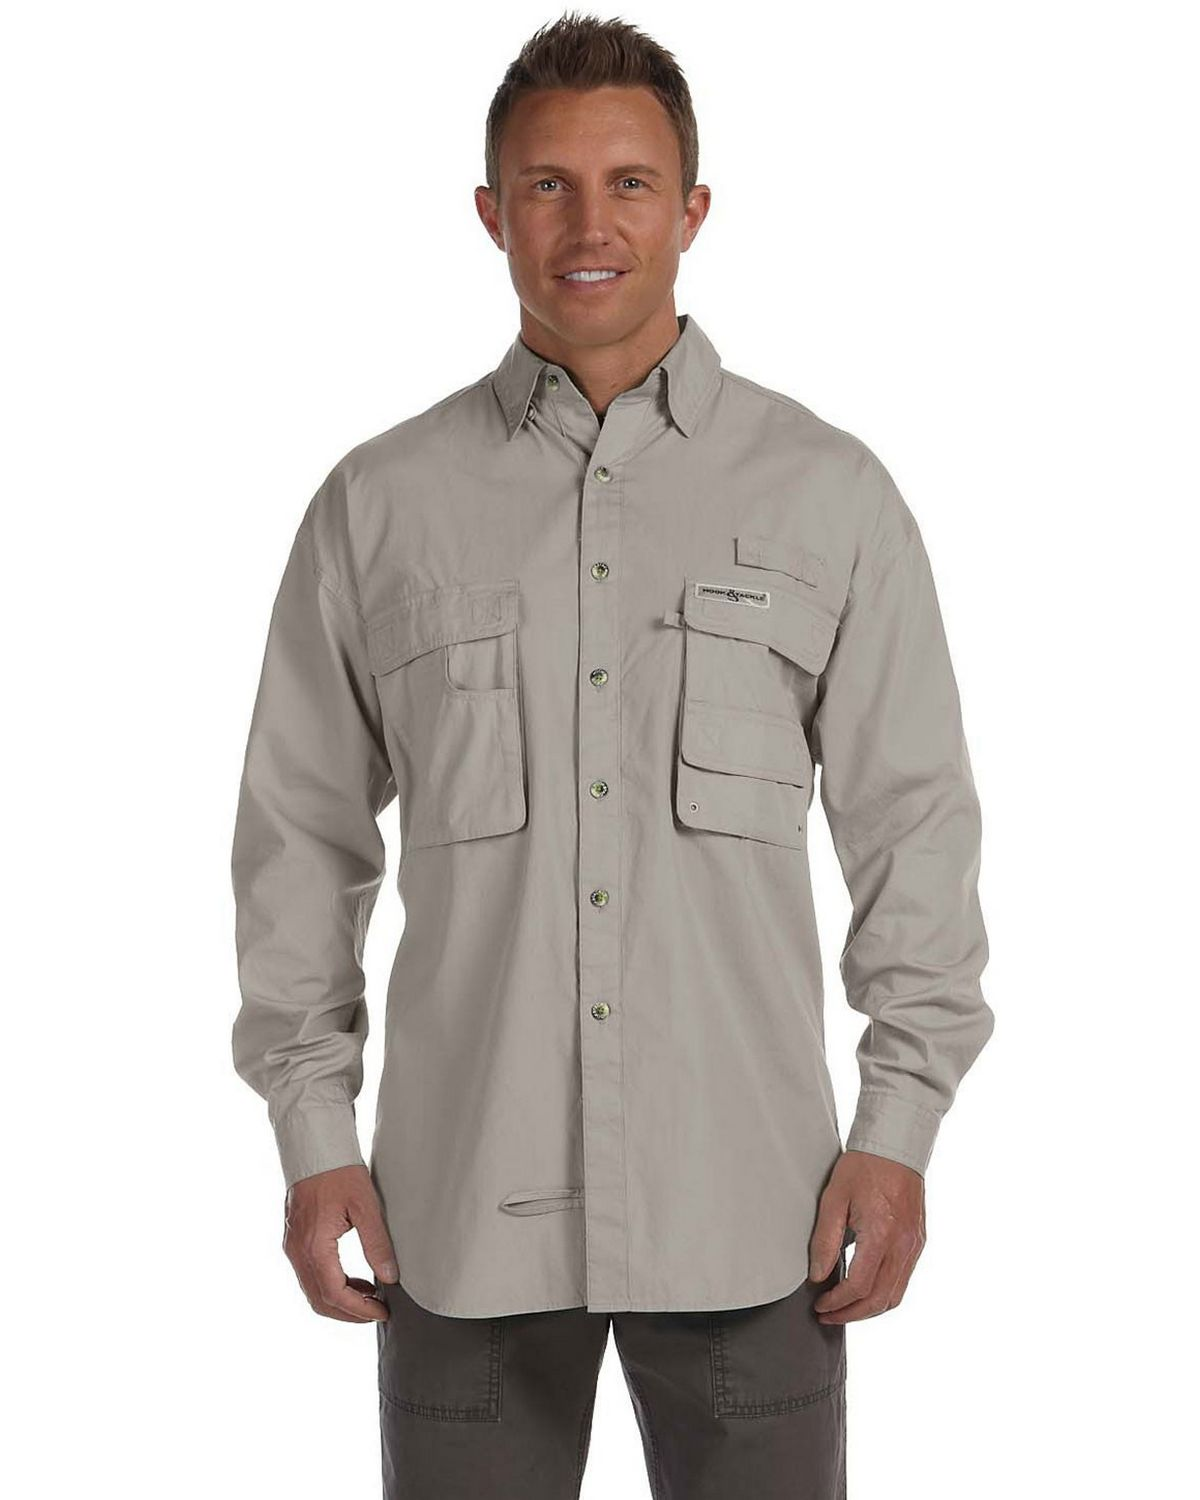 Hook & Tackle 1013L Men's Gulf Stream Long-Sleeve Fishing Shirt